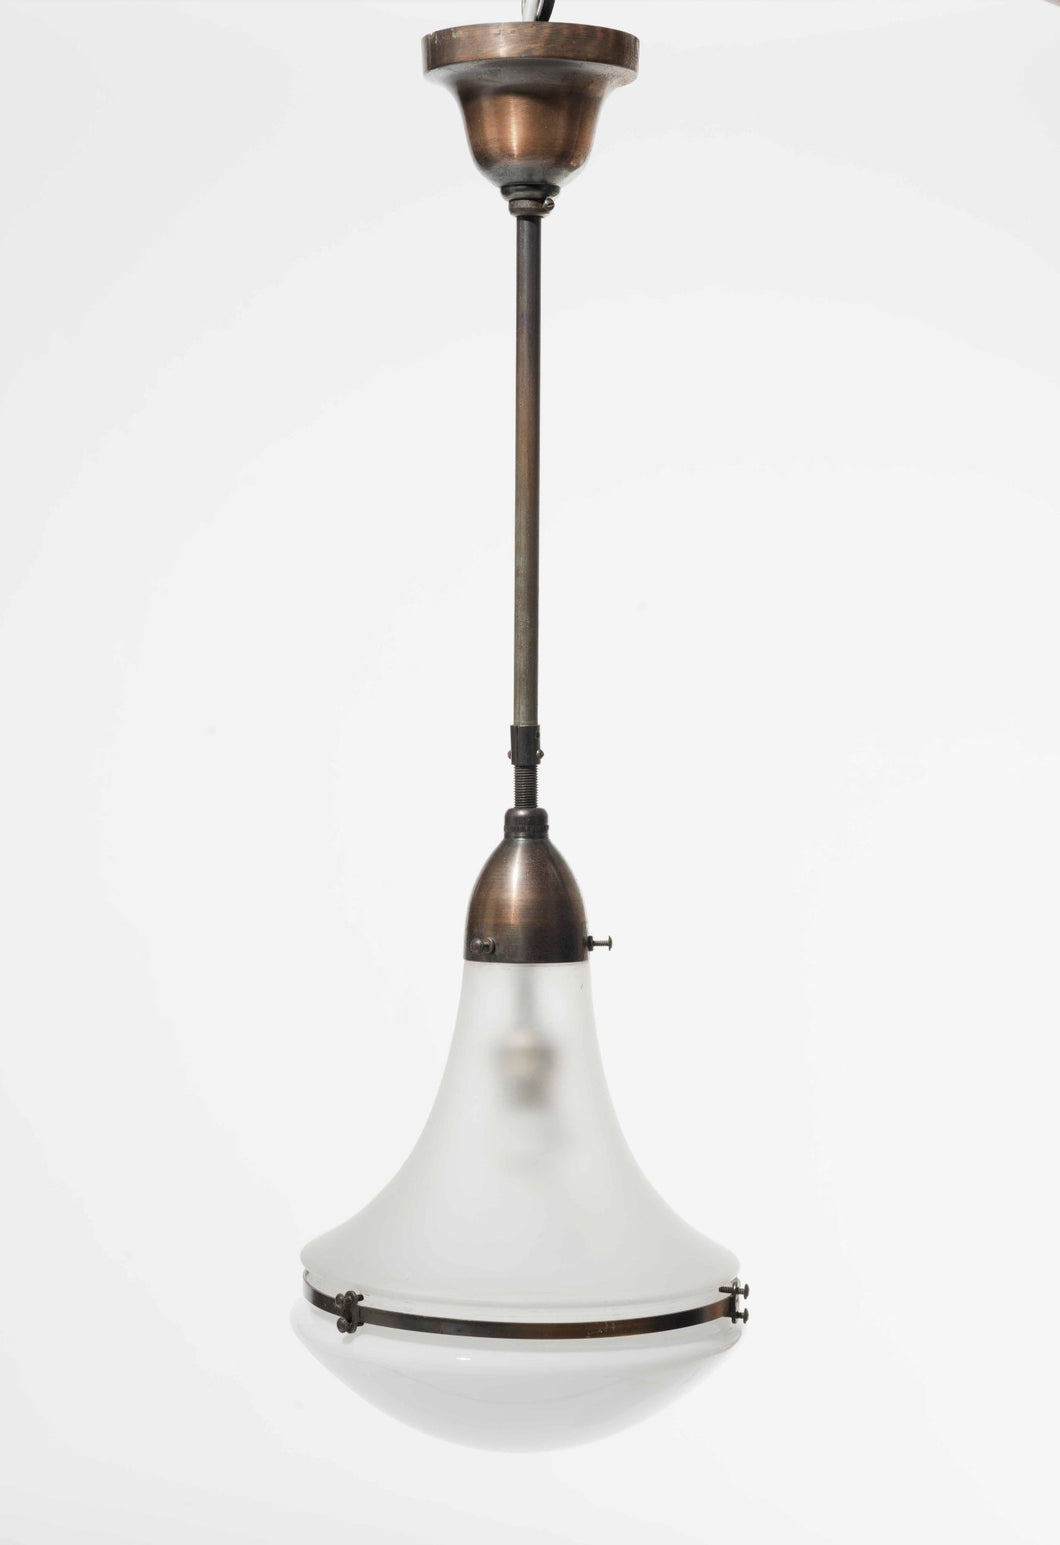 German Luzette Hanging Lamp by Peter Behrens, 1910s